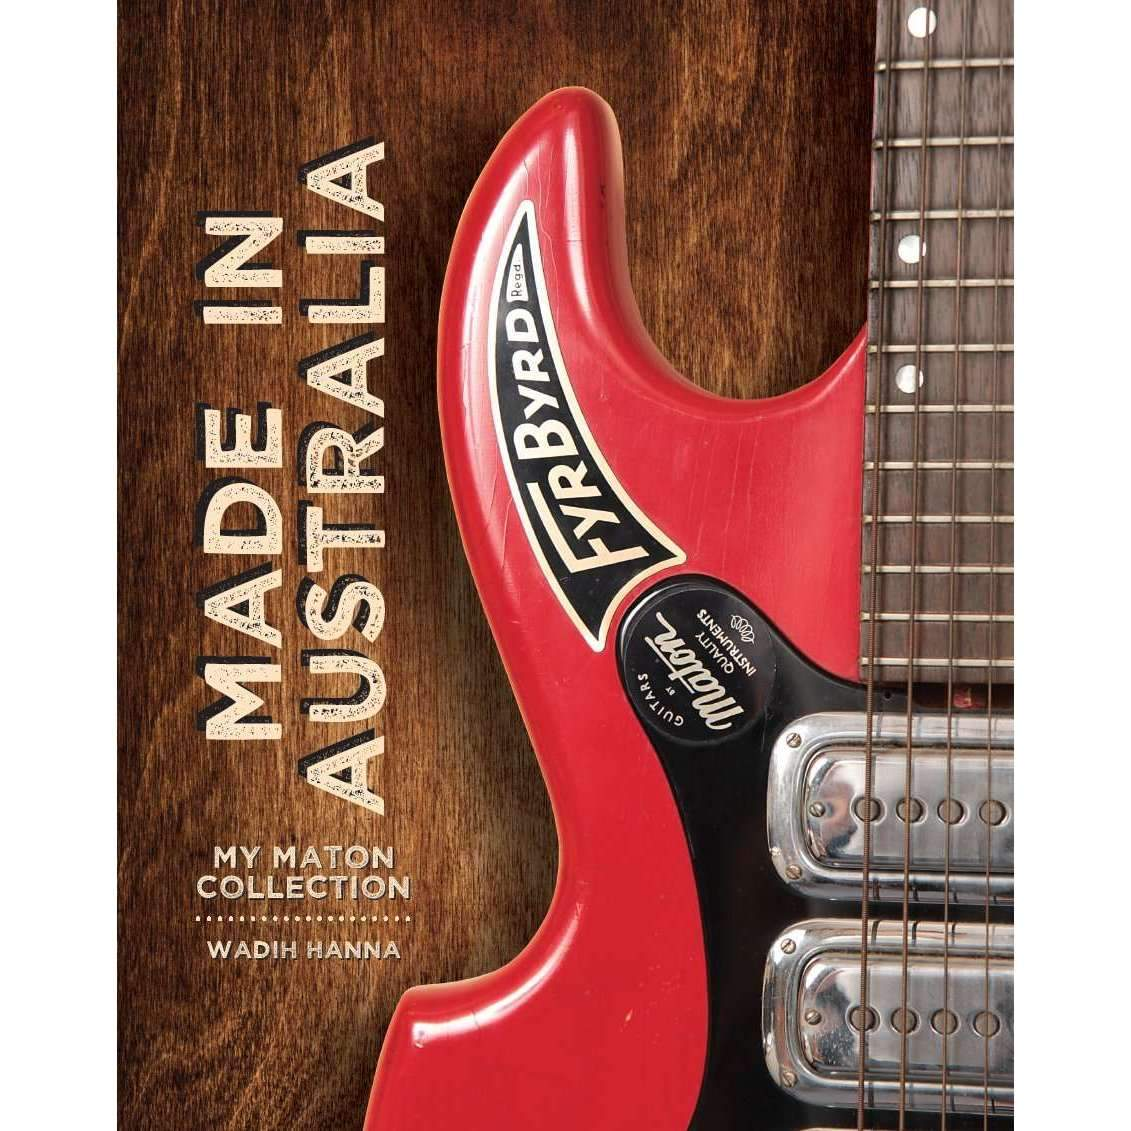 Made In Australia: My Maton Collection